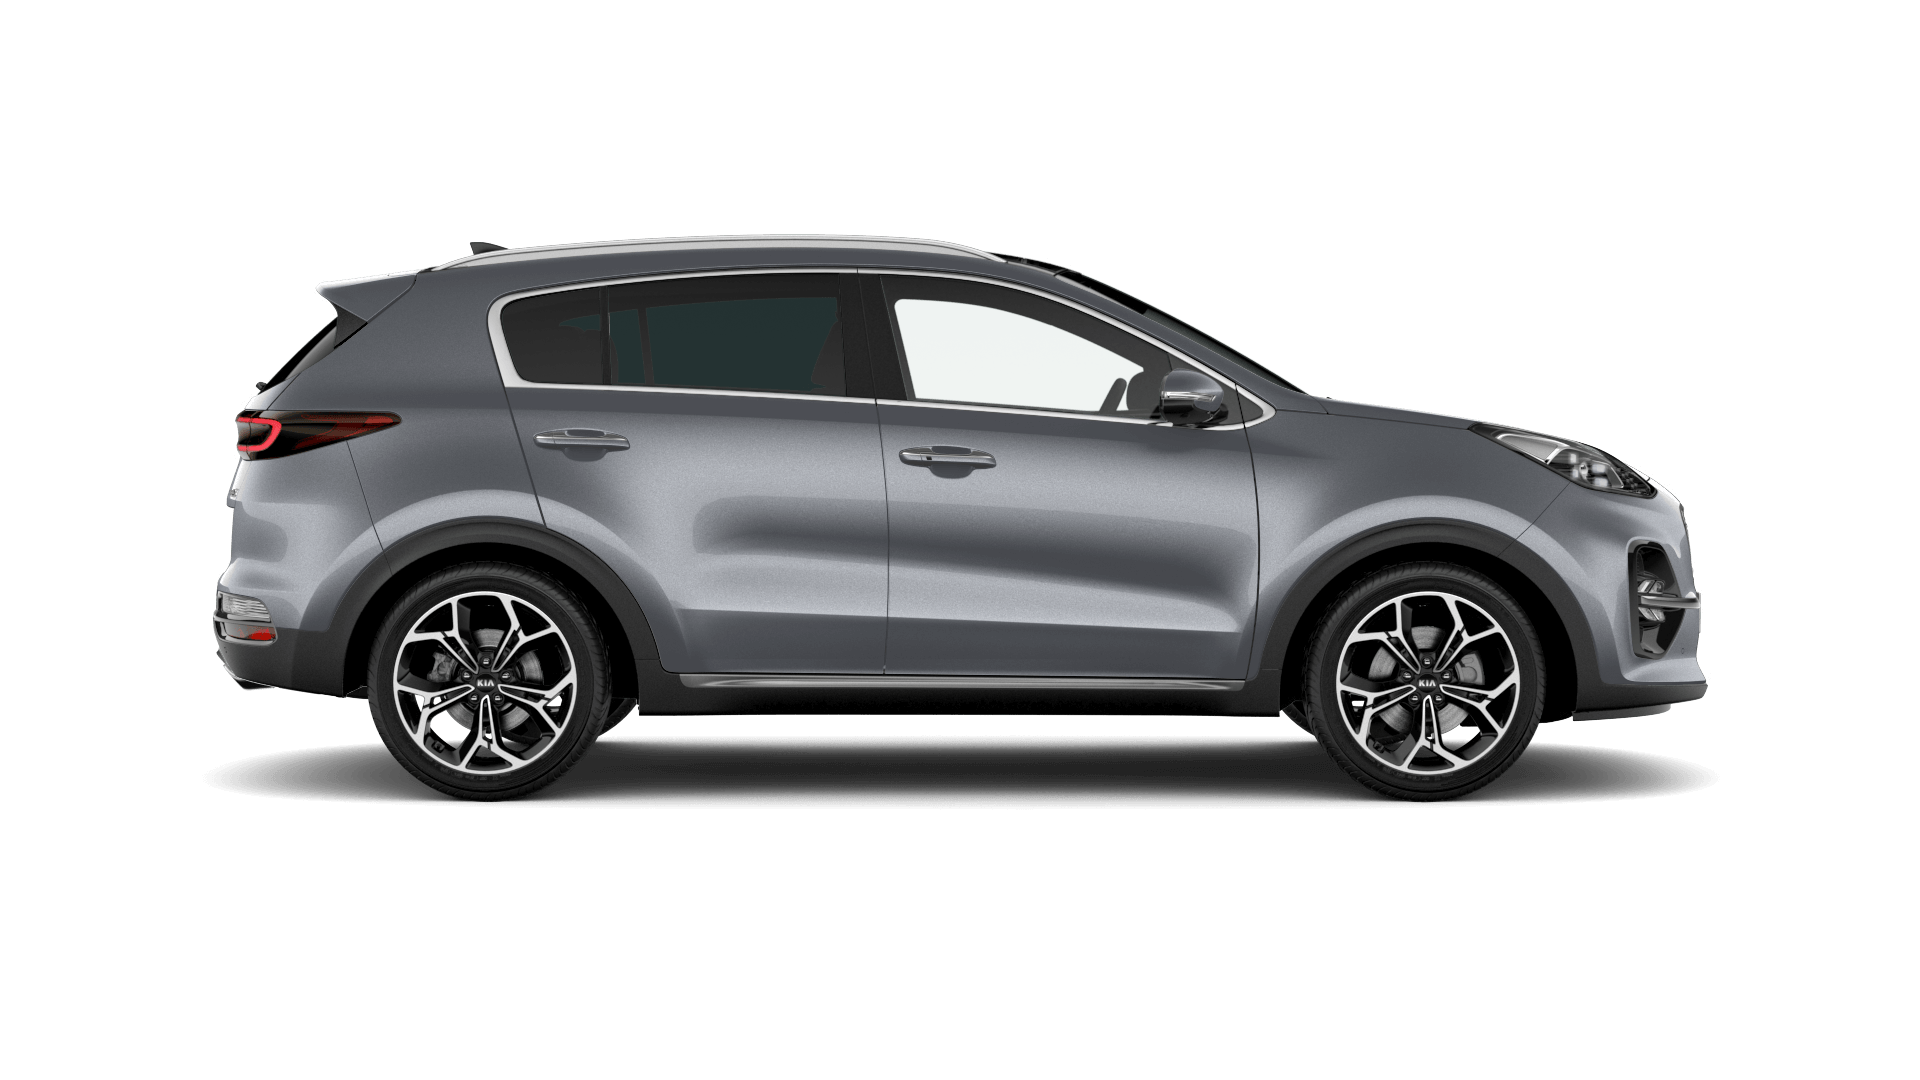 Kia Sportage - Available In Lunar Silver